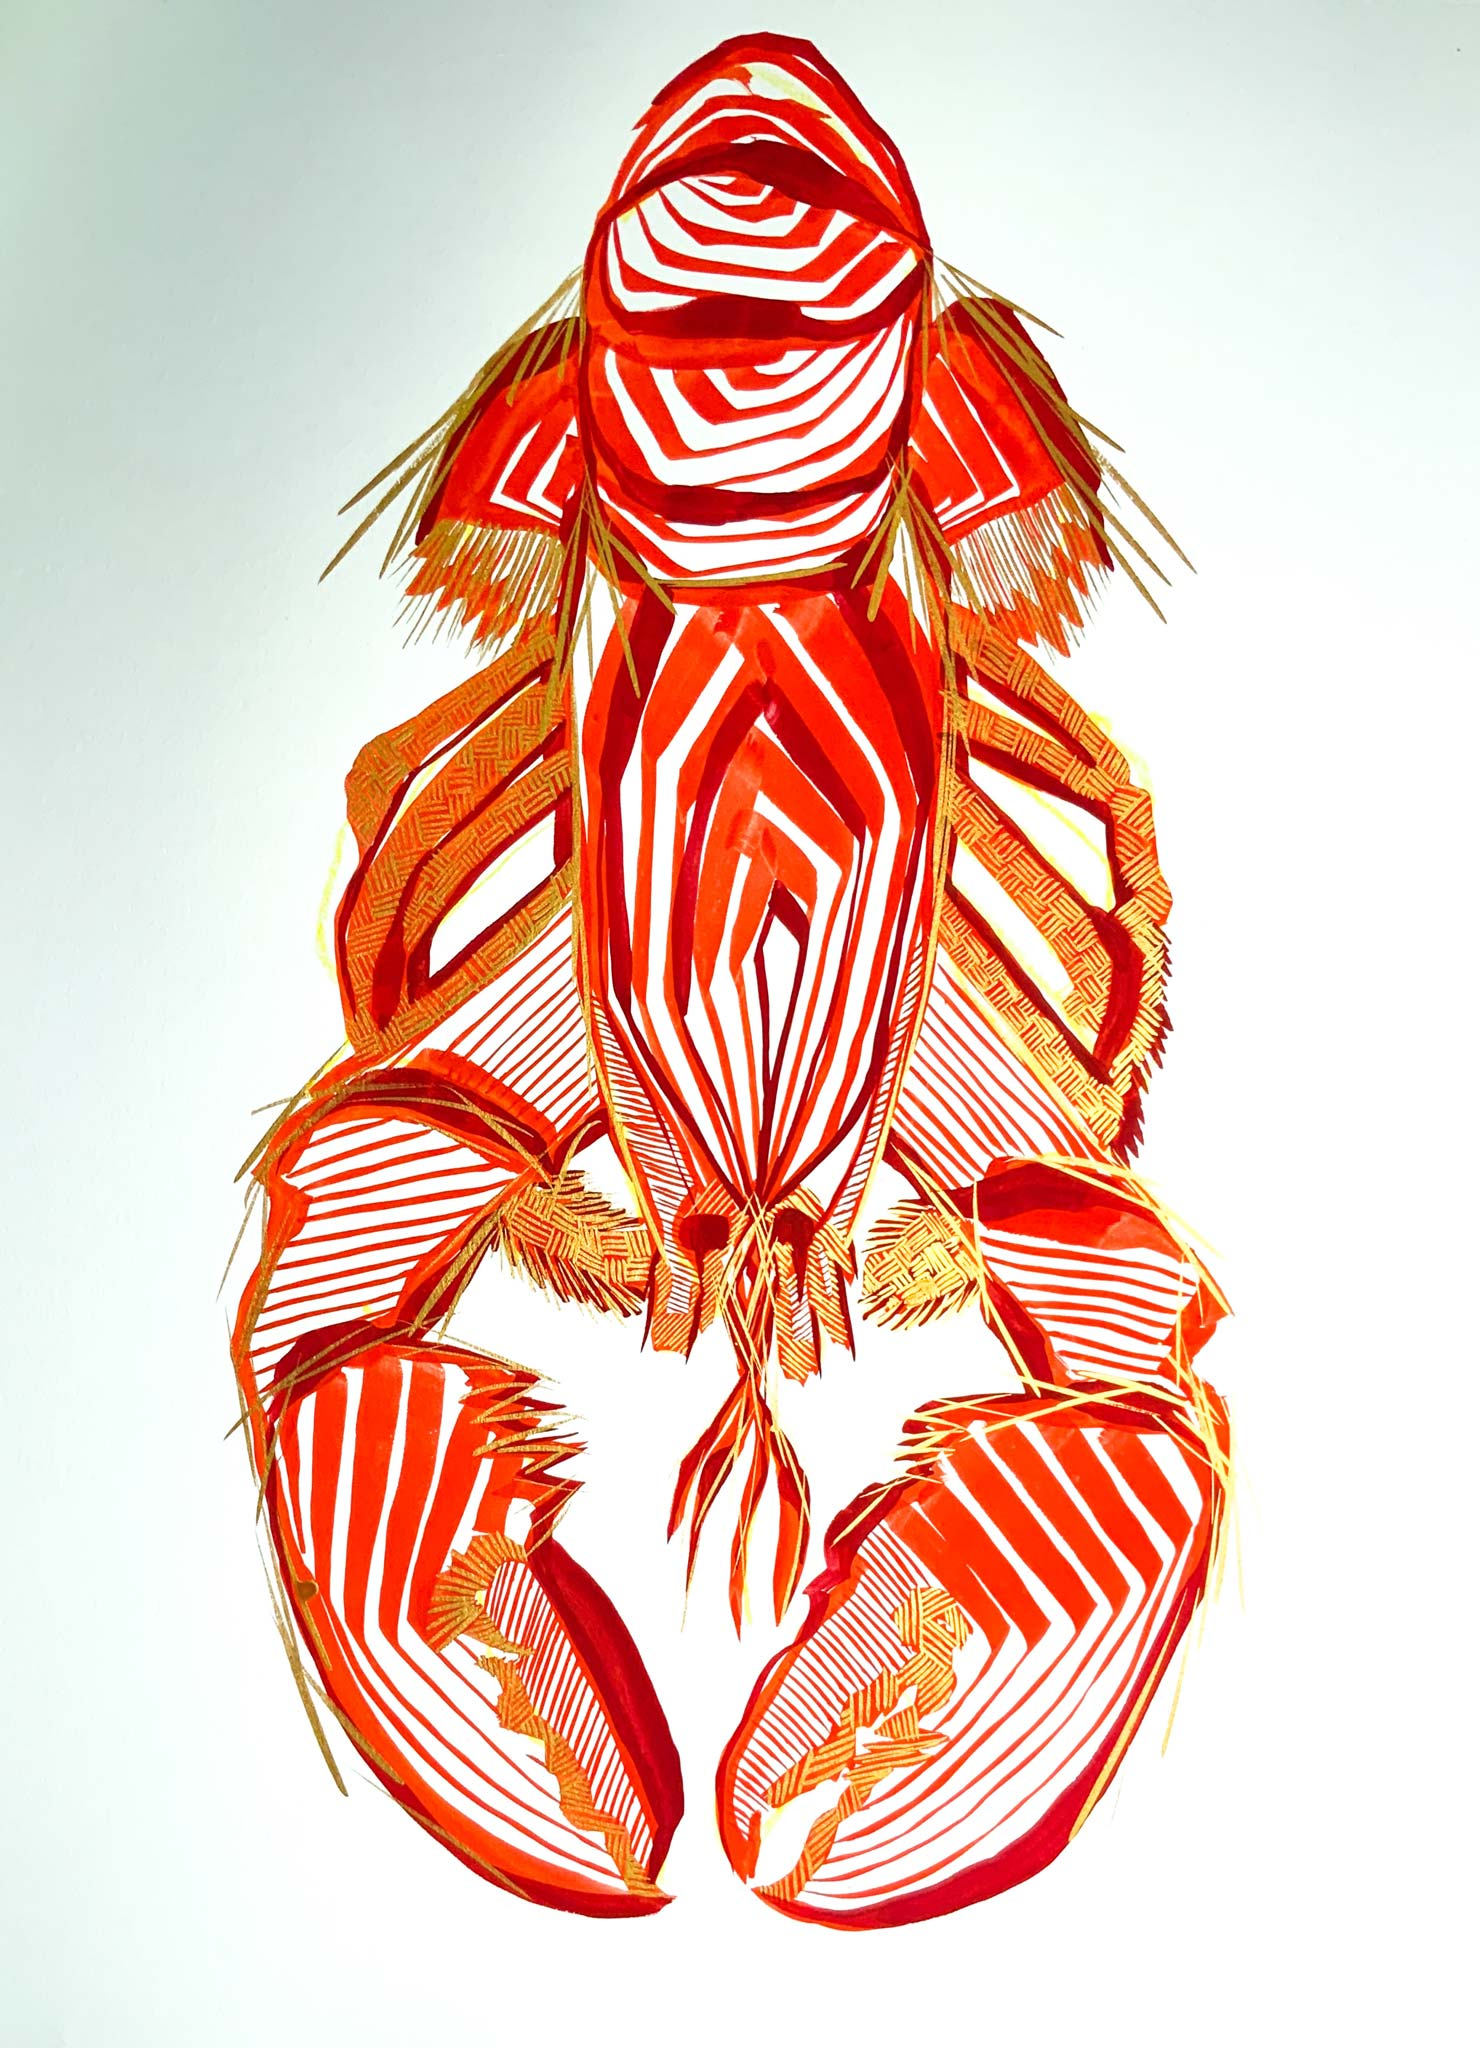 gouache, singular subject lobster in reds and gold, white ground, bold lines, layered lines create form, graphic style